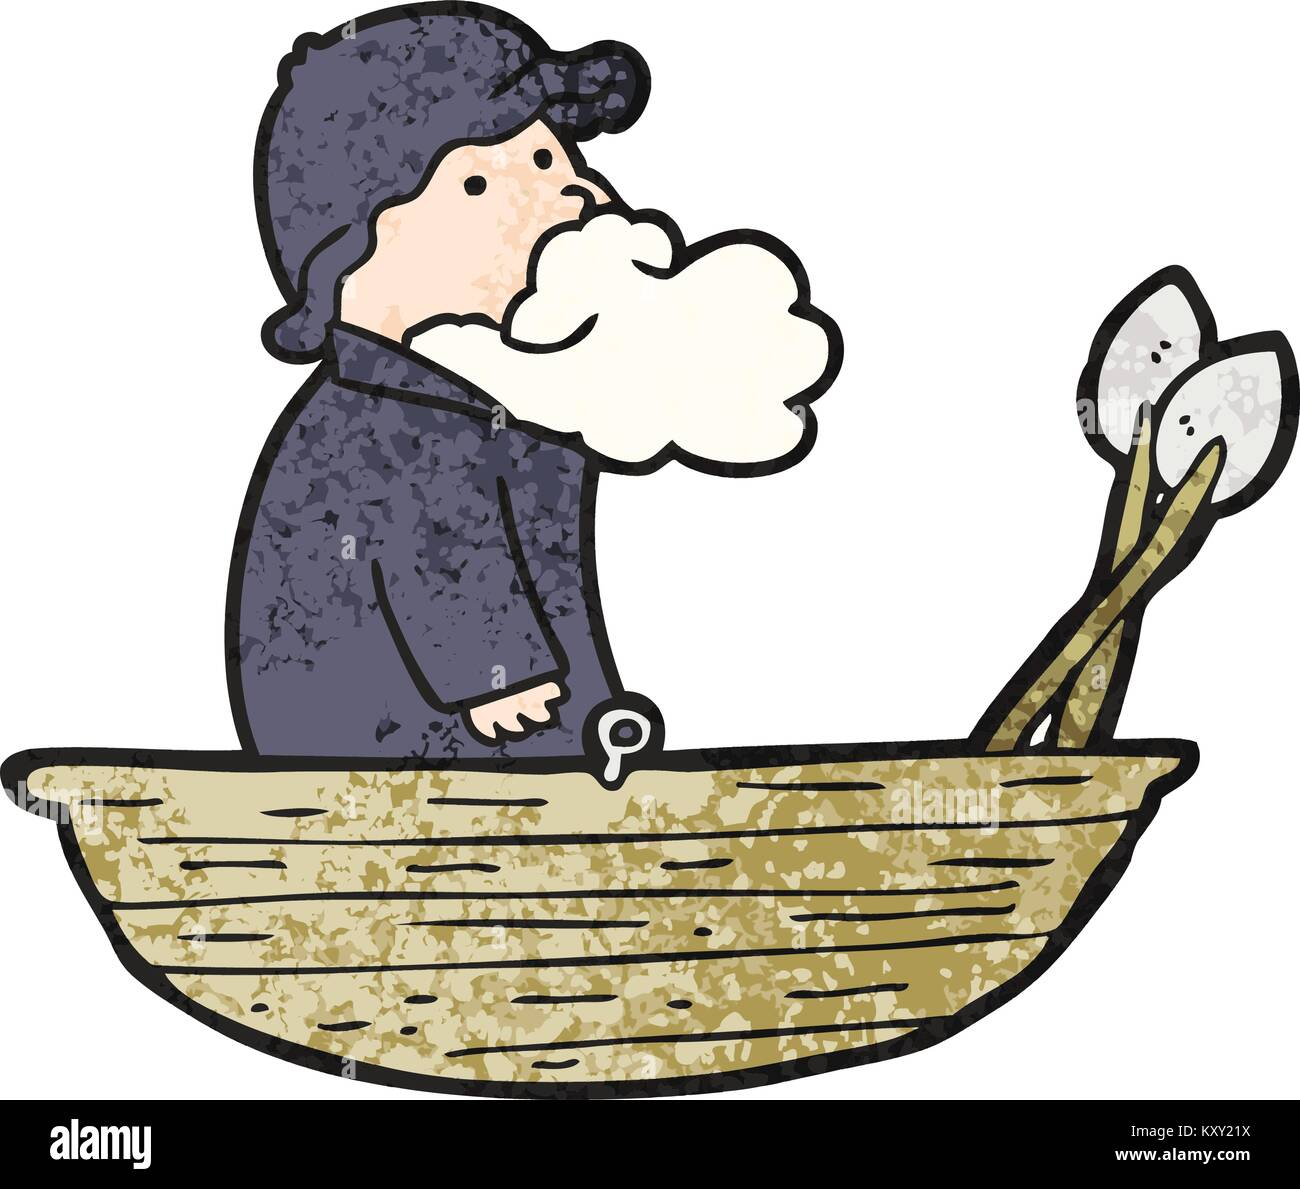 Fisherman Boat Cartoon High Resolution Stock Photography And Images Alamy